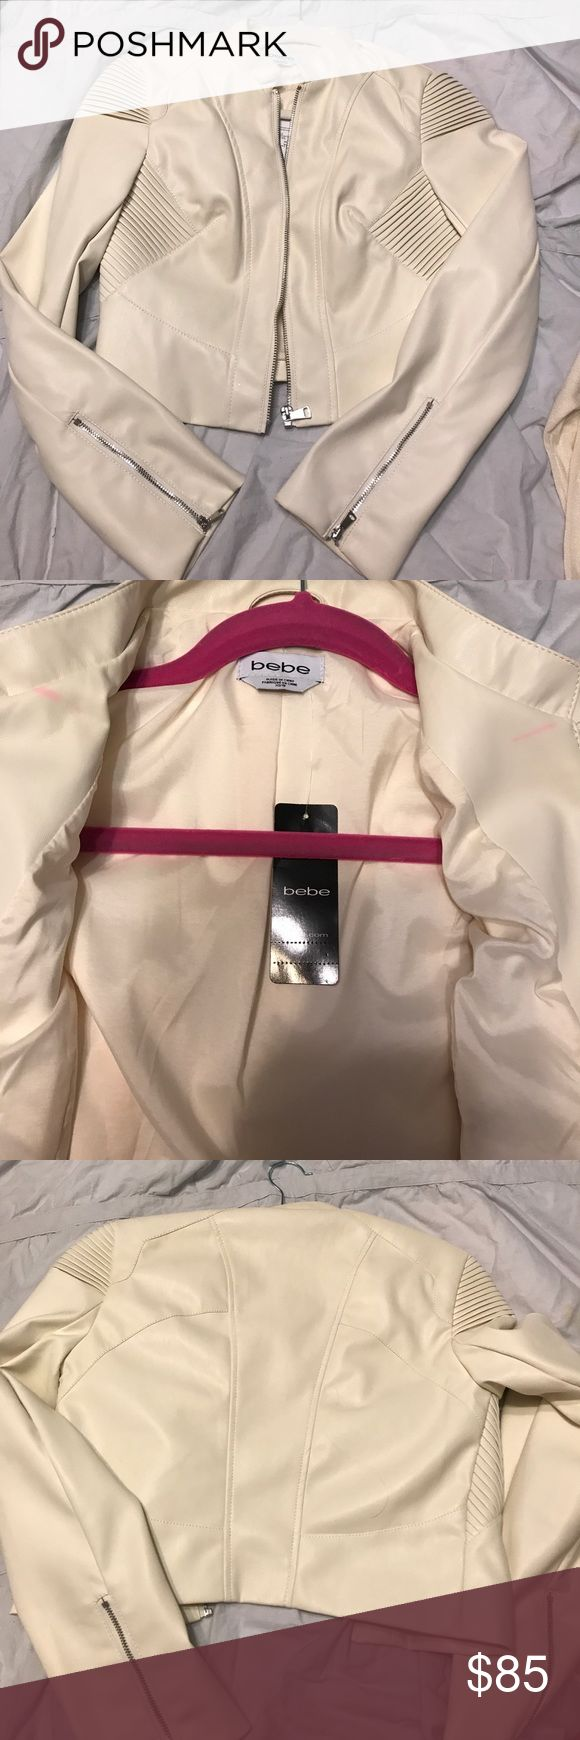 New BEBE leather jacket xs Brand new leather jacket from Bebe size xs. It's a cream off white color! Bought and never ended up wearing! It's been hanging in my closet there is two small pink spots in the inside from the hanger resting on it.  But they seem to come out by rubbing them! bebe Jackets & Coats